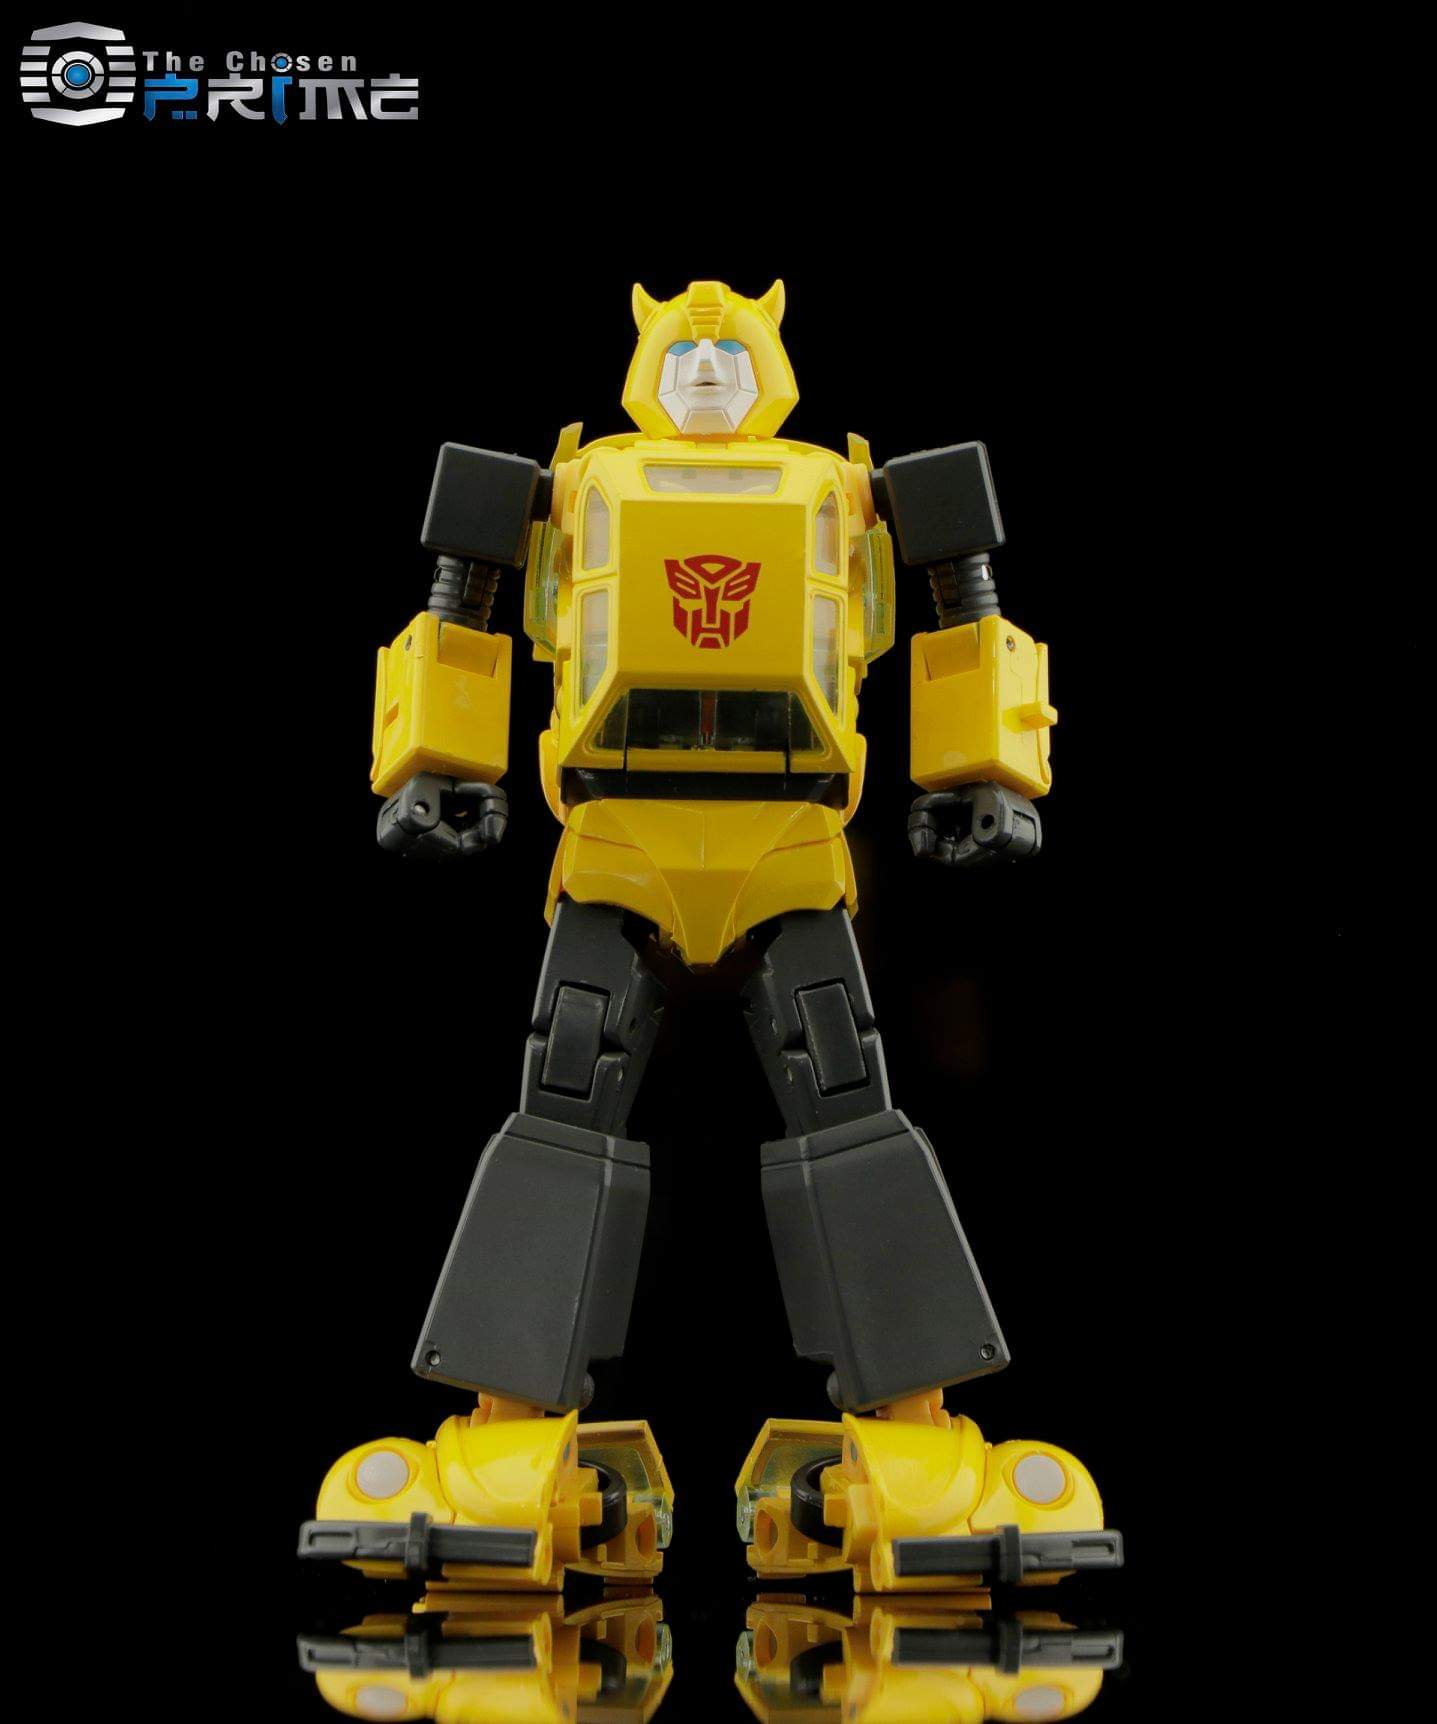 [Masterpiece] MP-45 Bumblebee/Bourdon v2.0 - Page 2 Kd3sA48q_o